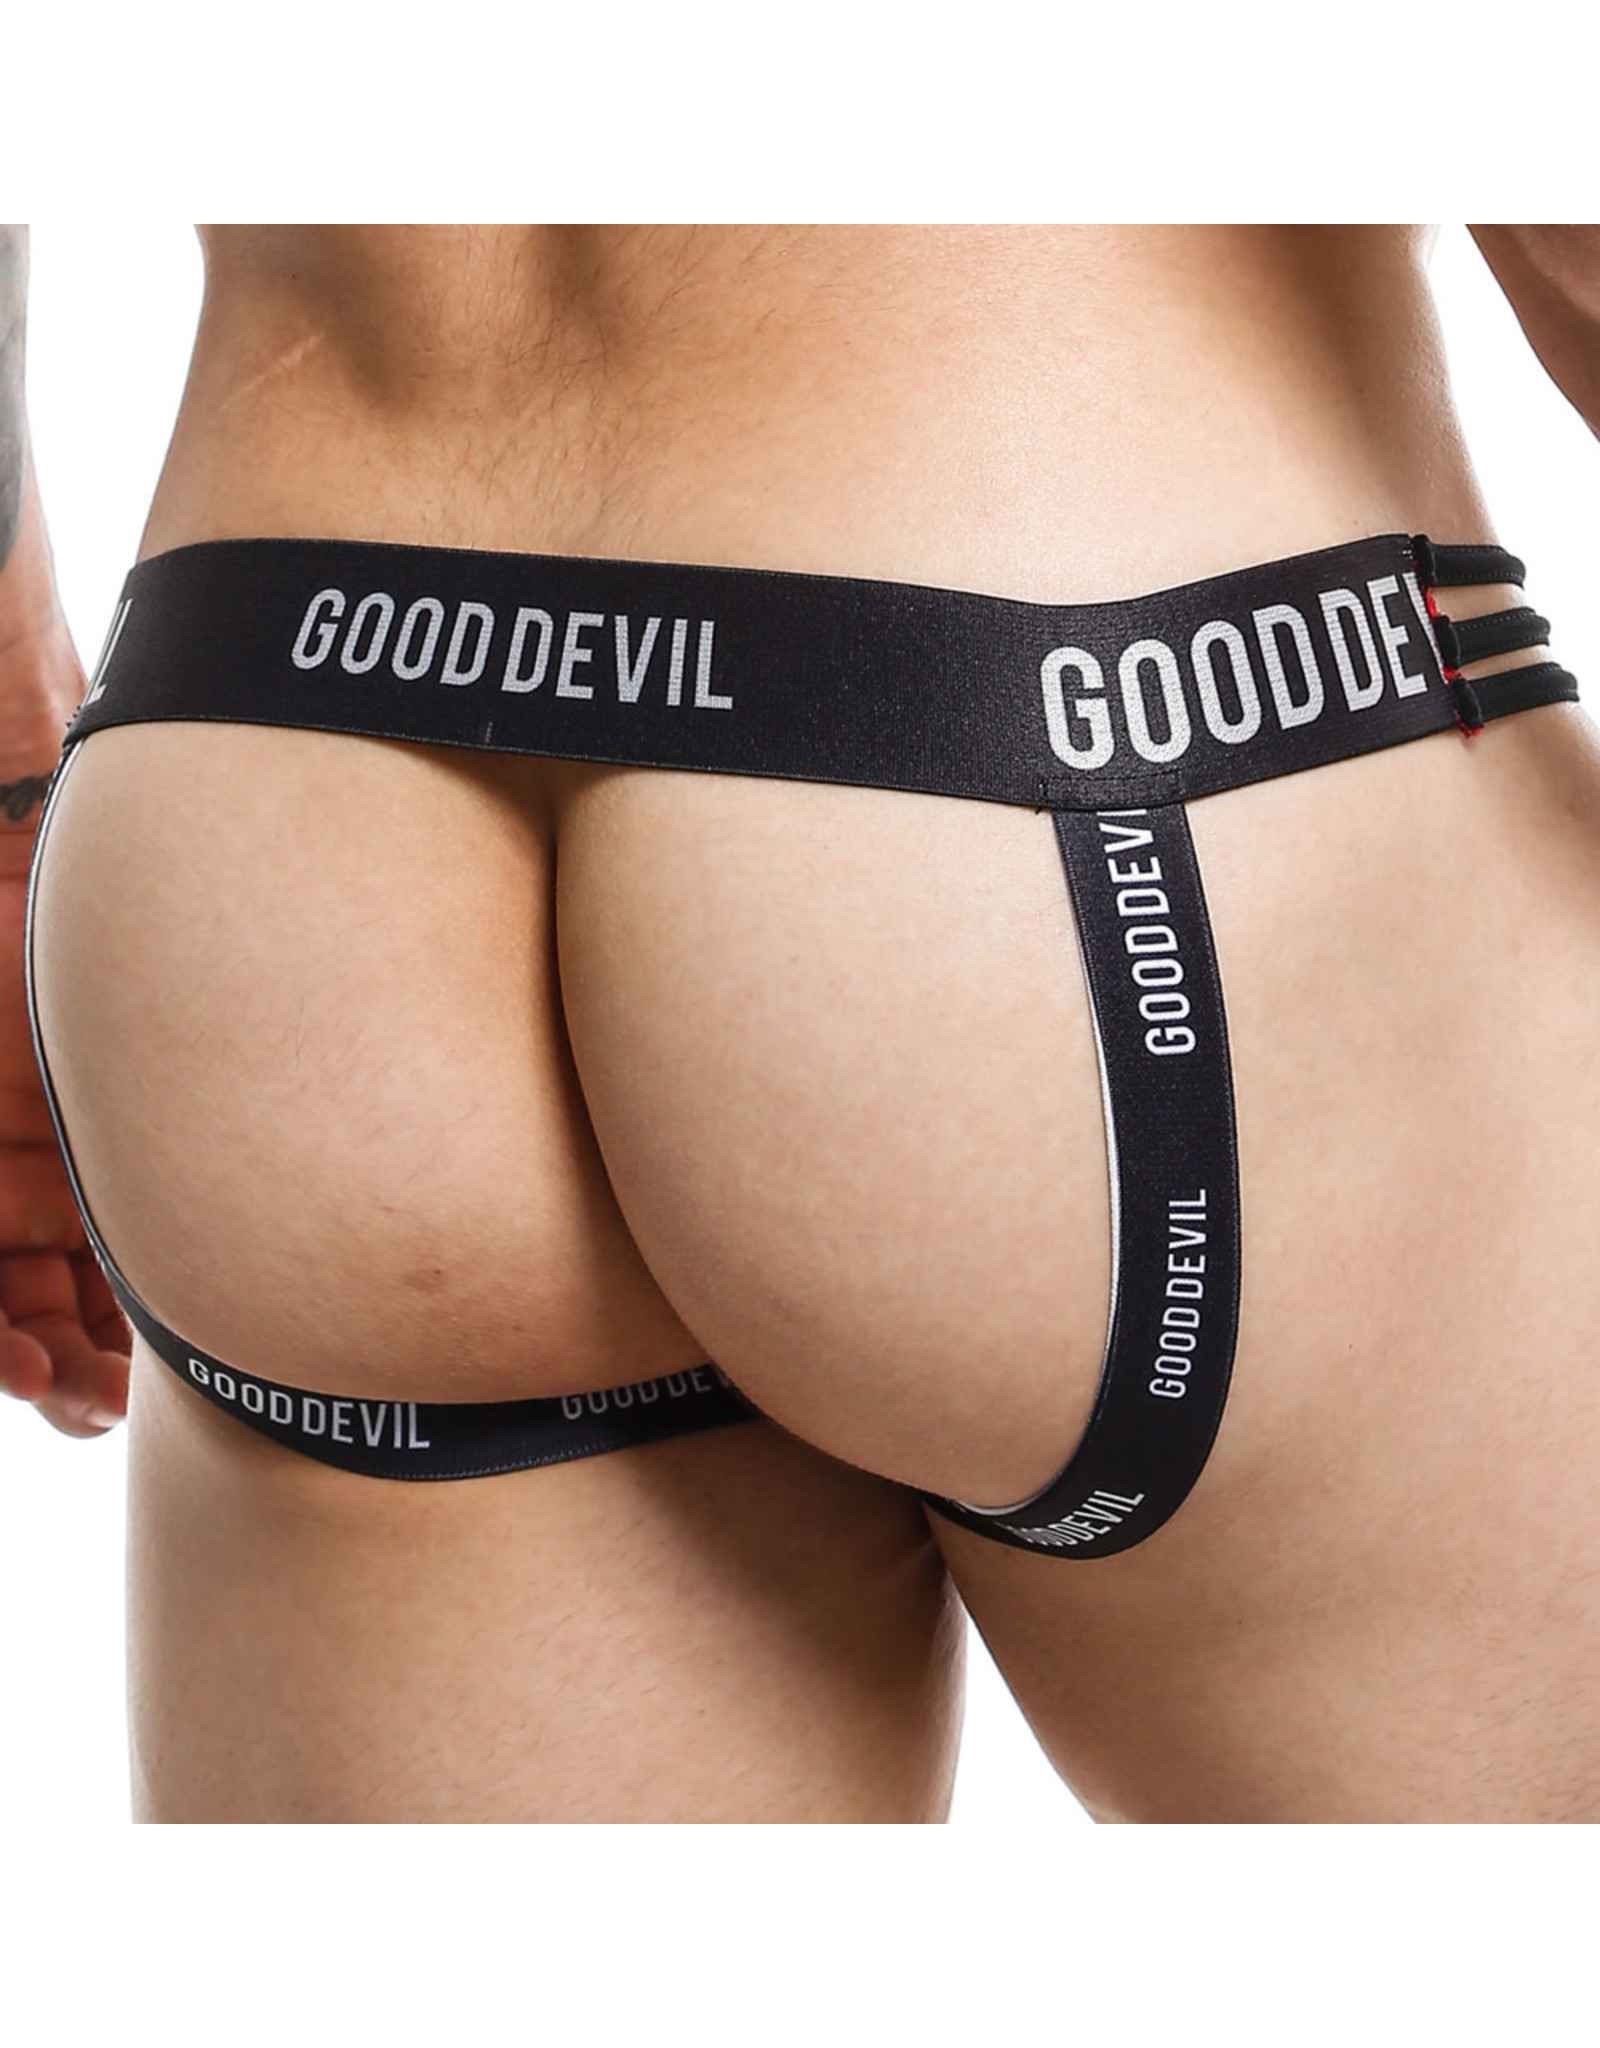 Good Devil 3 way Jockstrsap